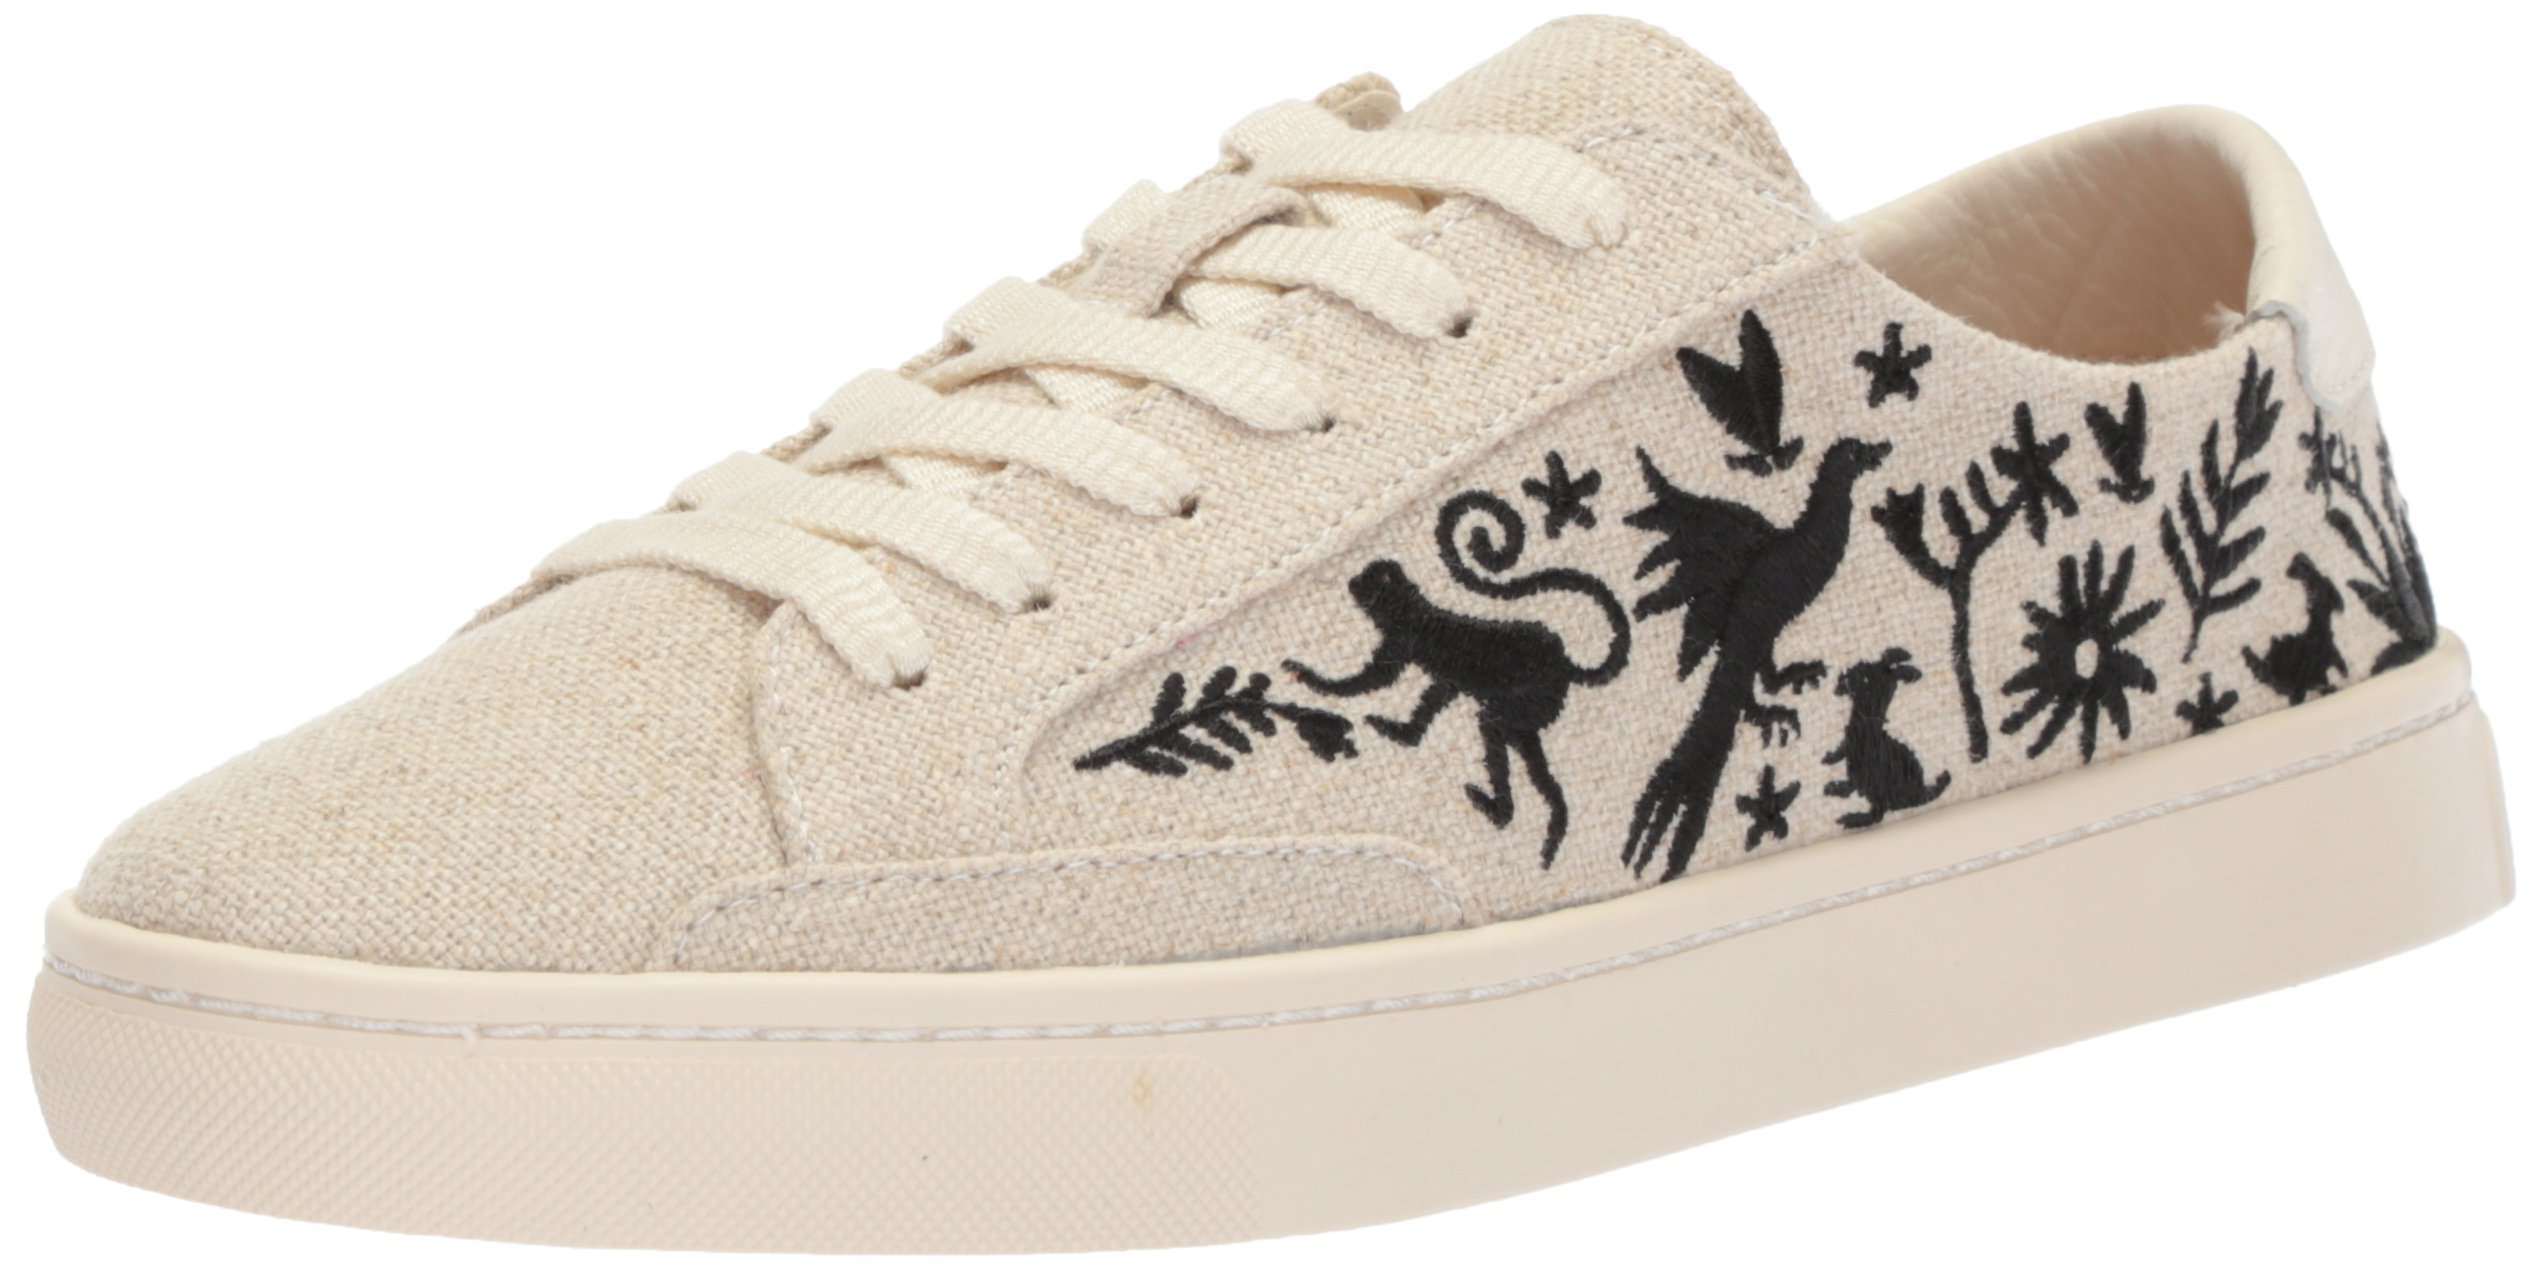 Soludos Women's Otomi Lace up Sneaker, Sand Black, 5 B US